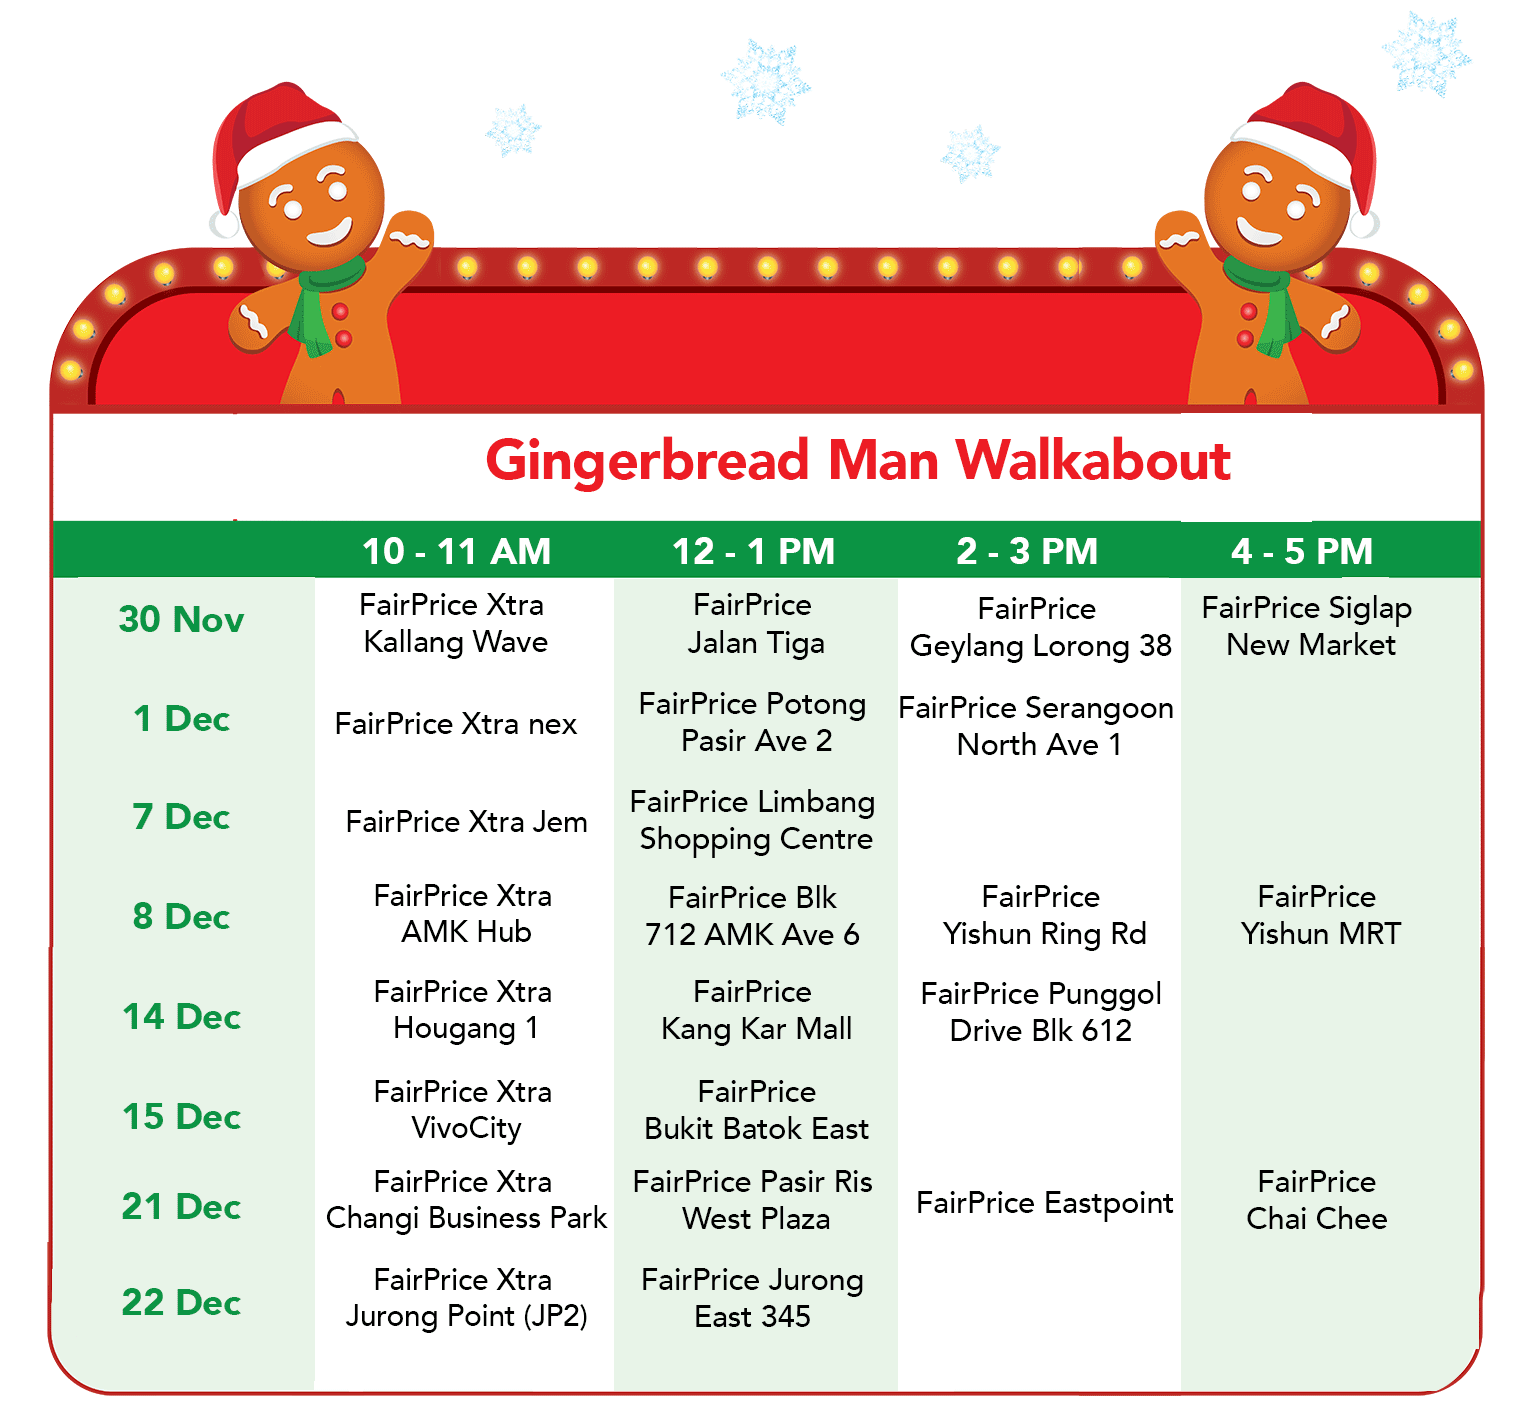 FairPrice Christmas - Gingerbread Man Walkabout